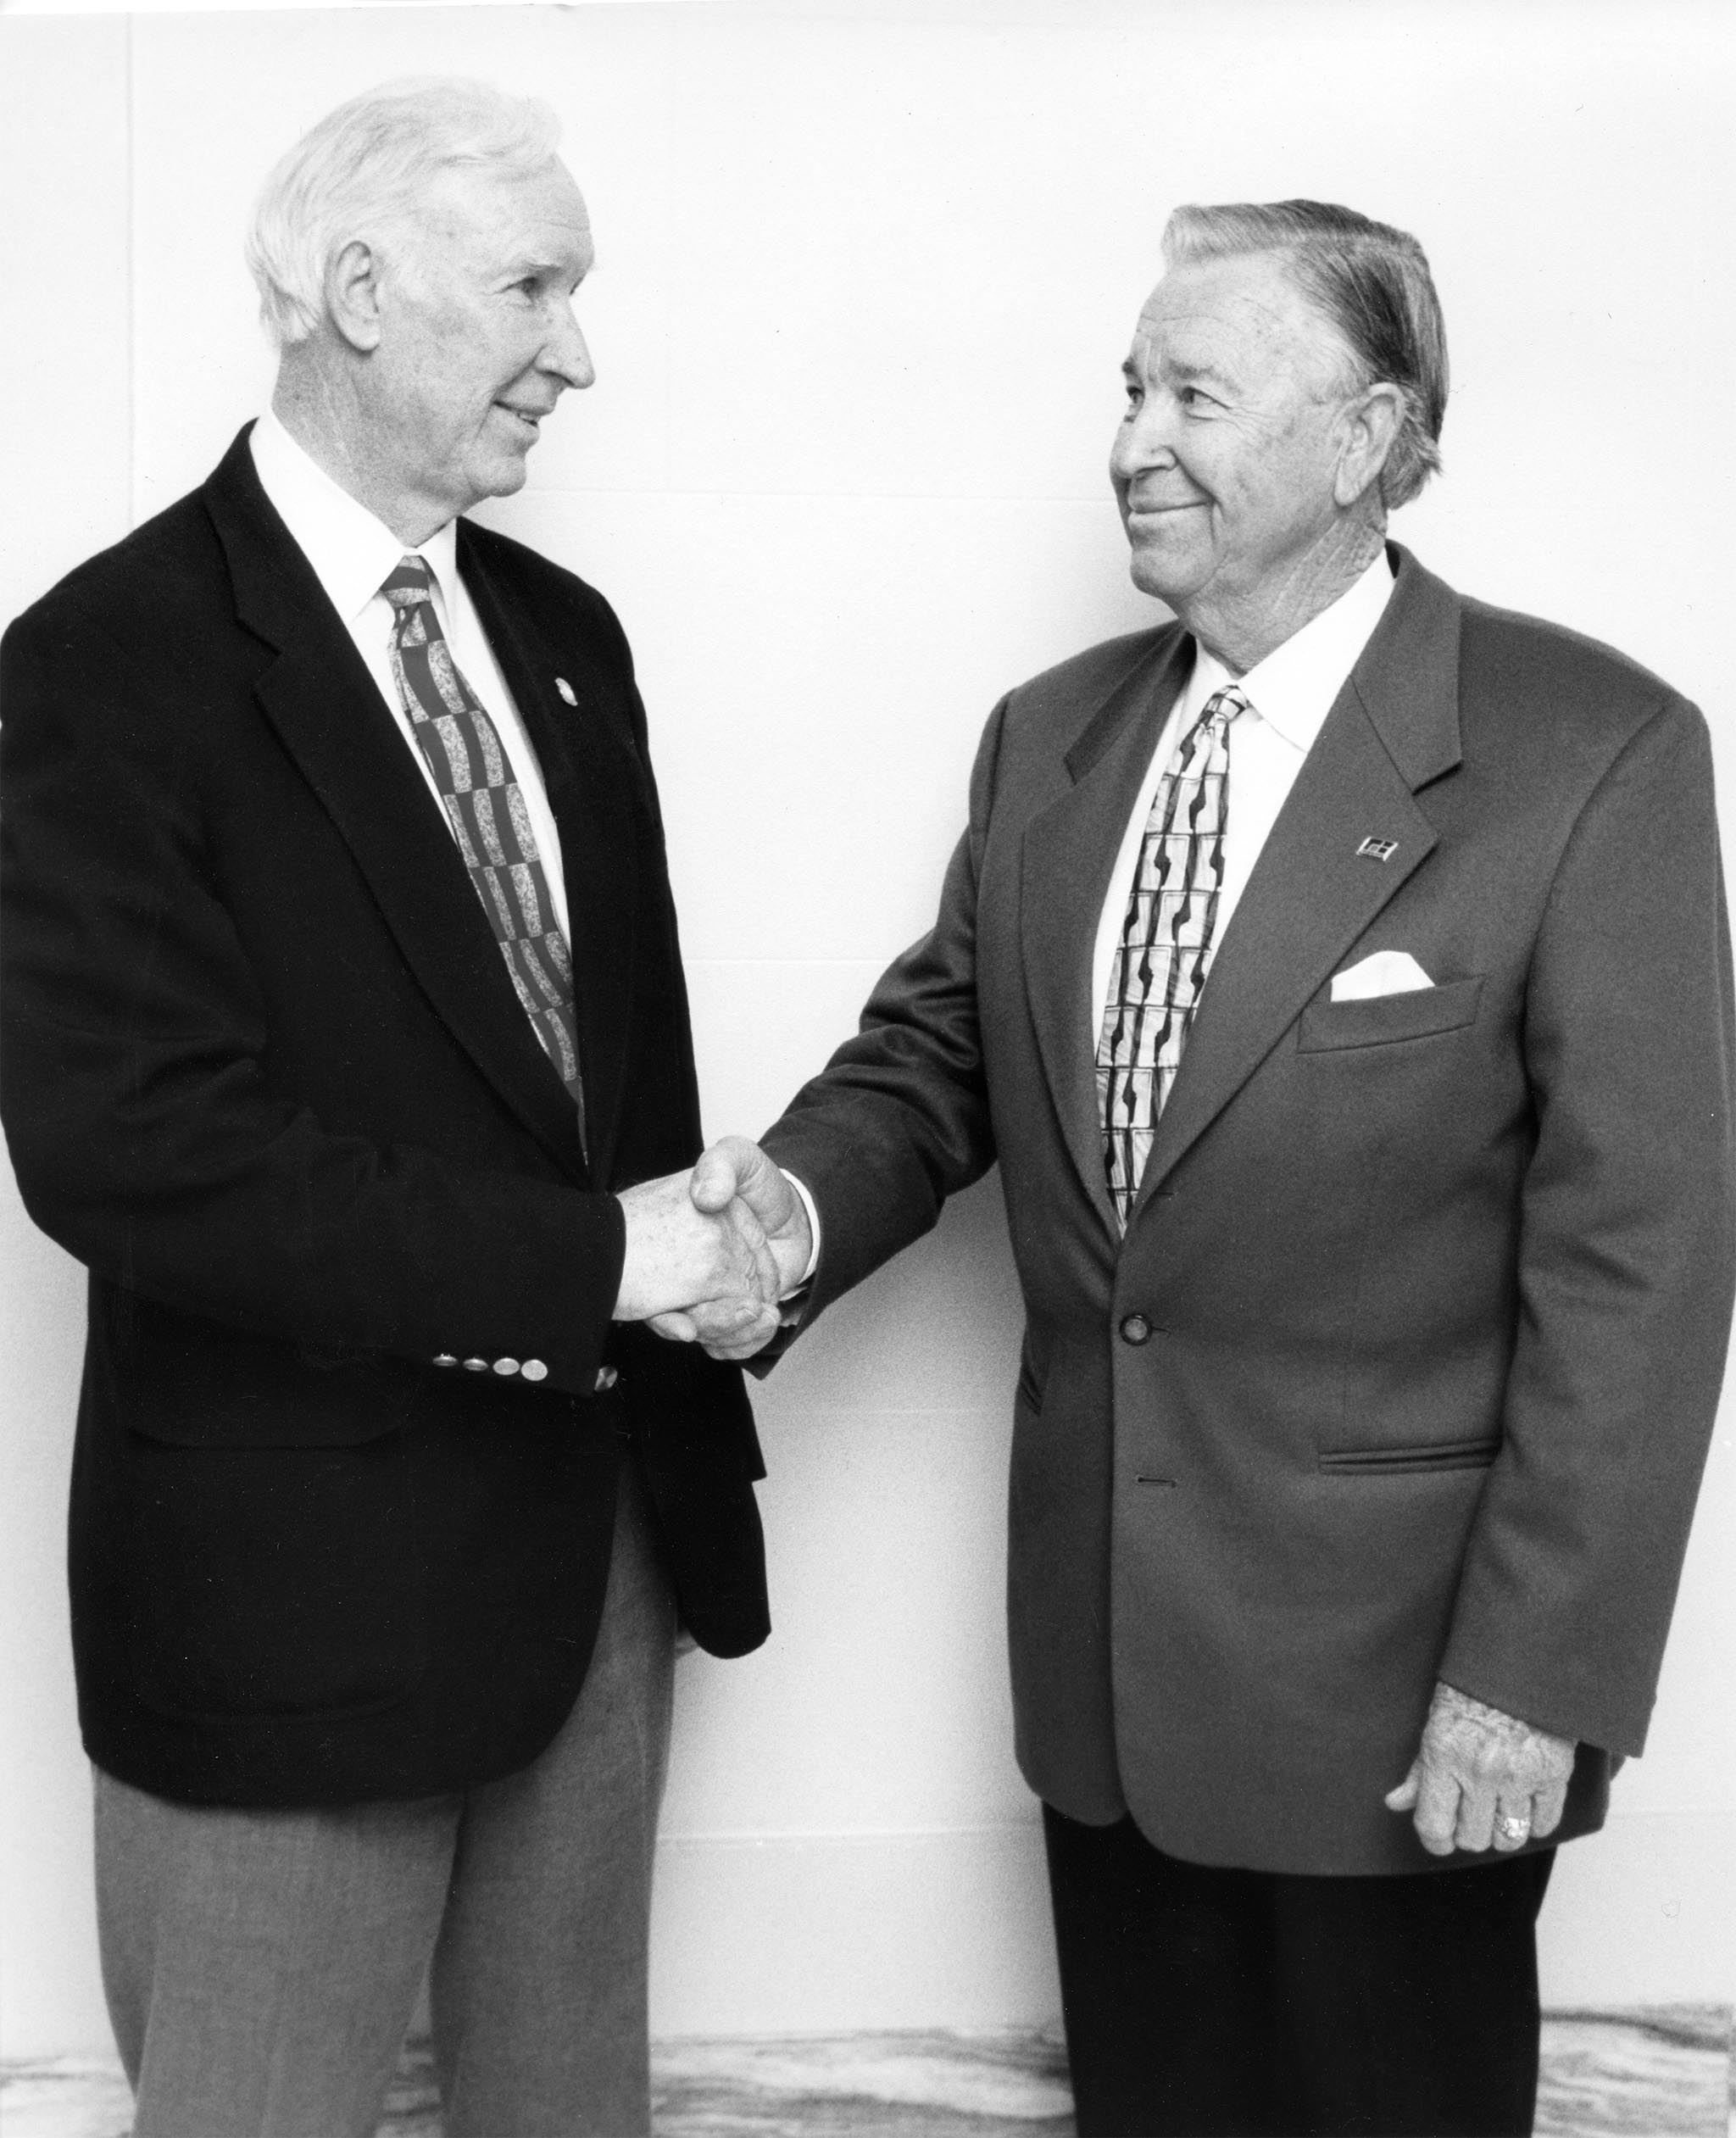 Oklahoma Farm Bureau Vice President Jack Givens, right, offers congratulations to Sen. Gilmer Capps upon the Snyder legislator being named winner of the Oklahoma Association of Conservation Districts' Hall of Fame Award in 1997.